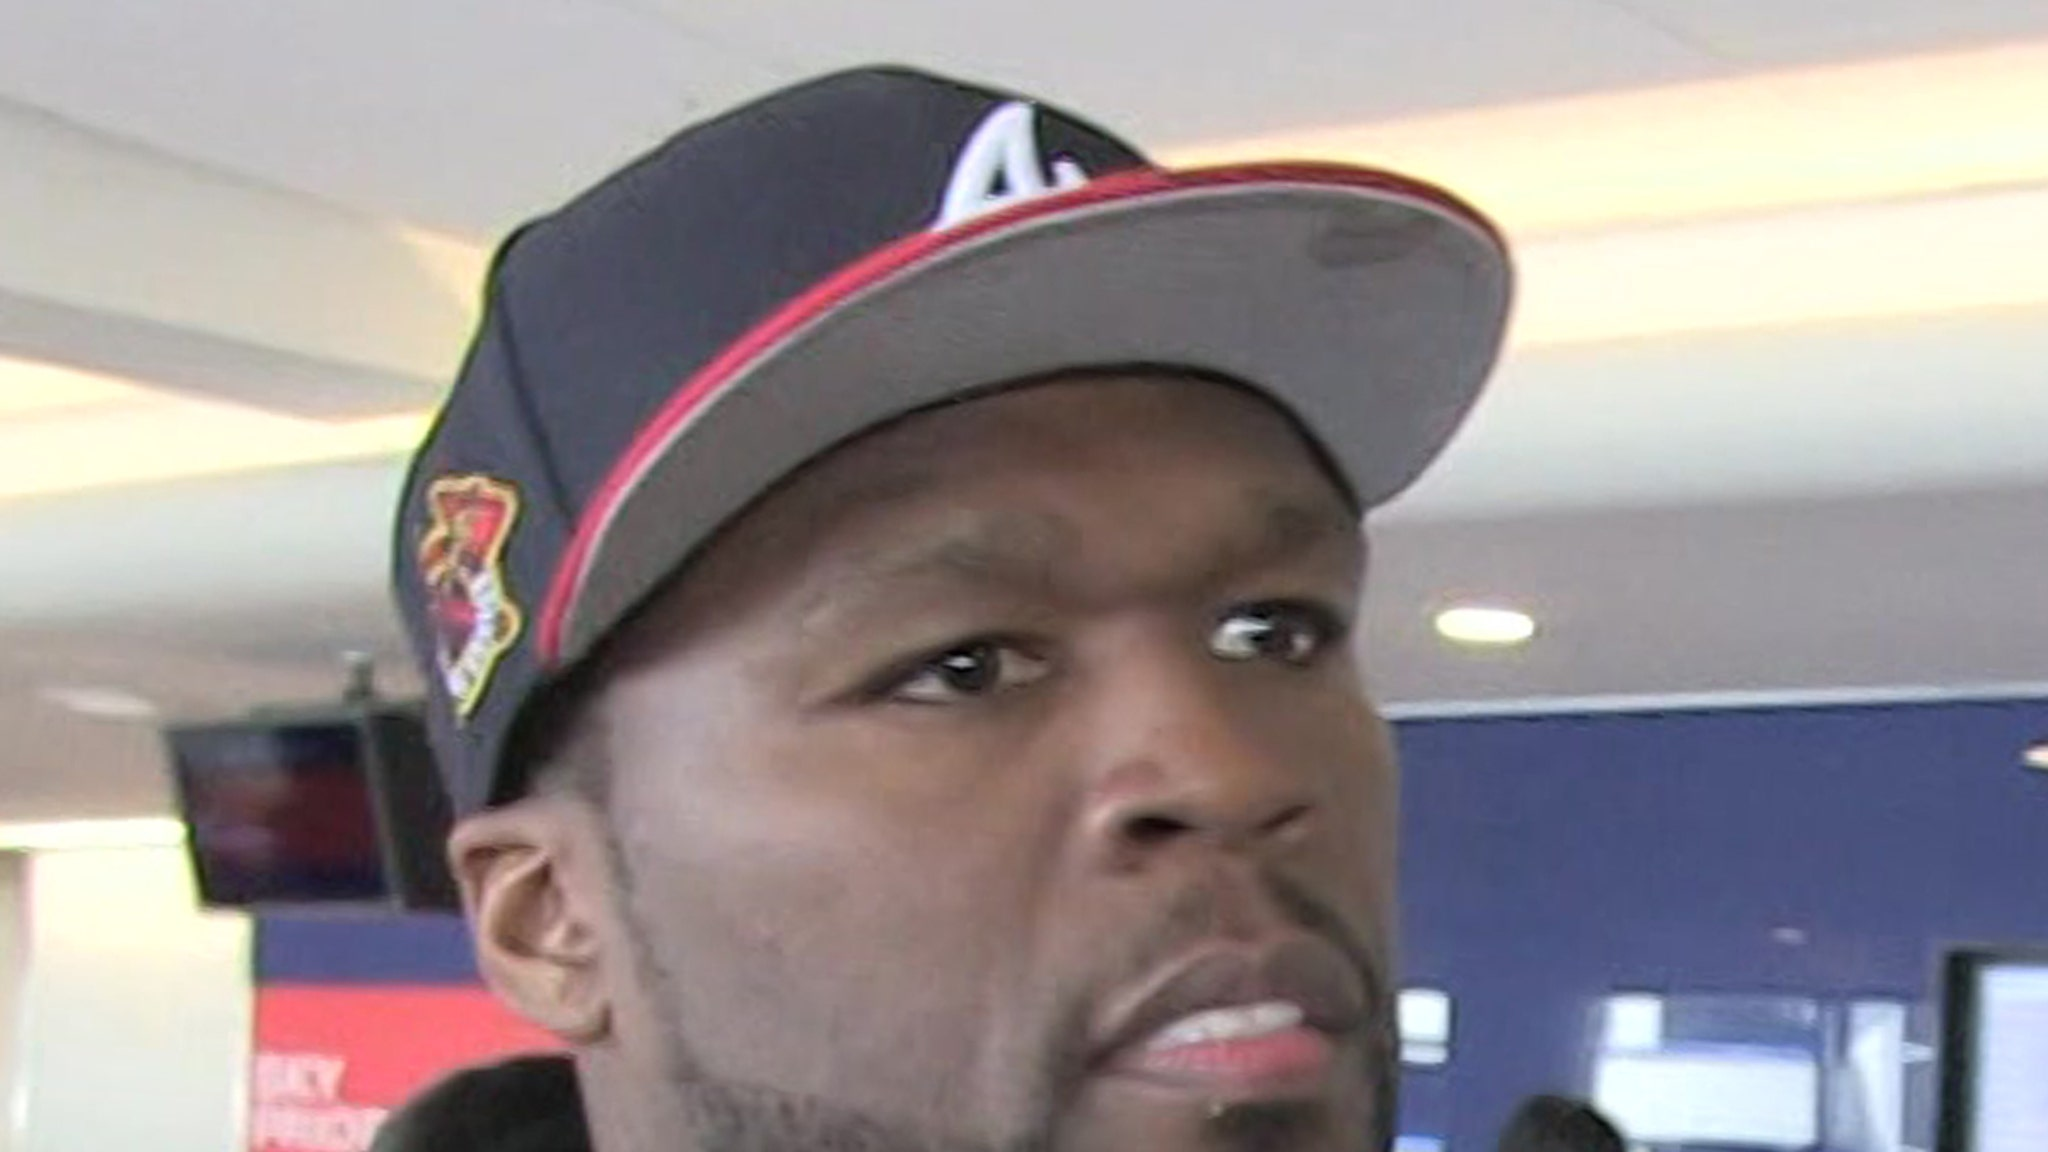 50 Cent Burglary Suspects Arrested, Allegedly Stole $3 Million thumbnail